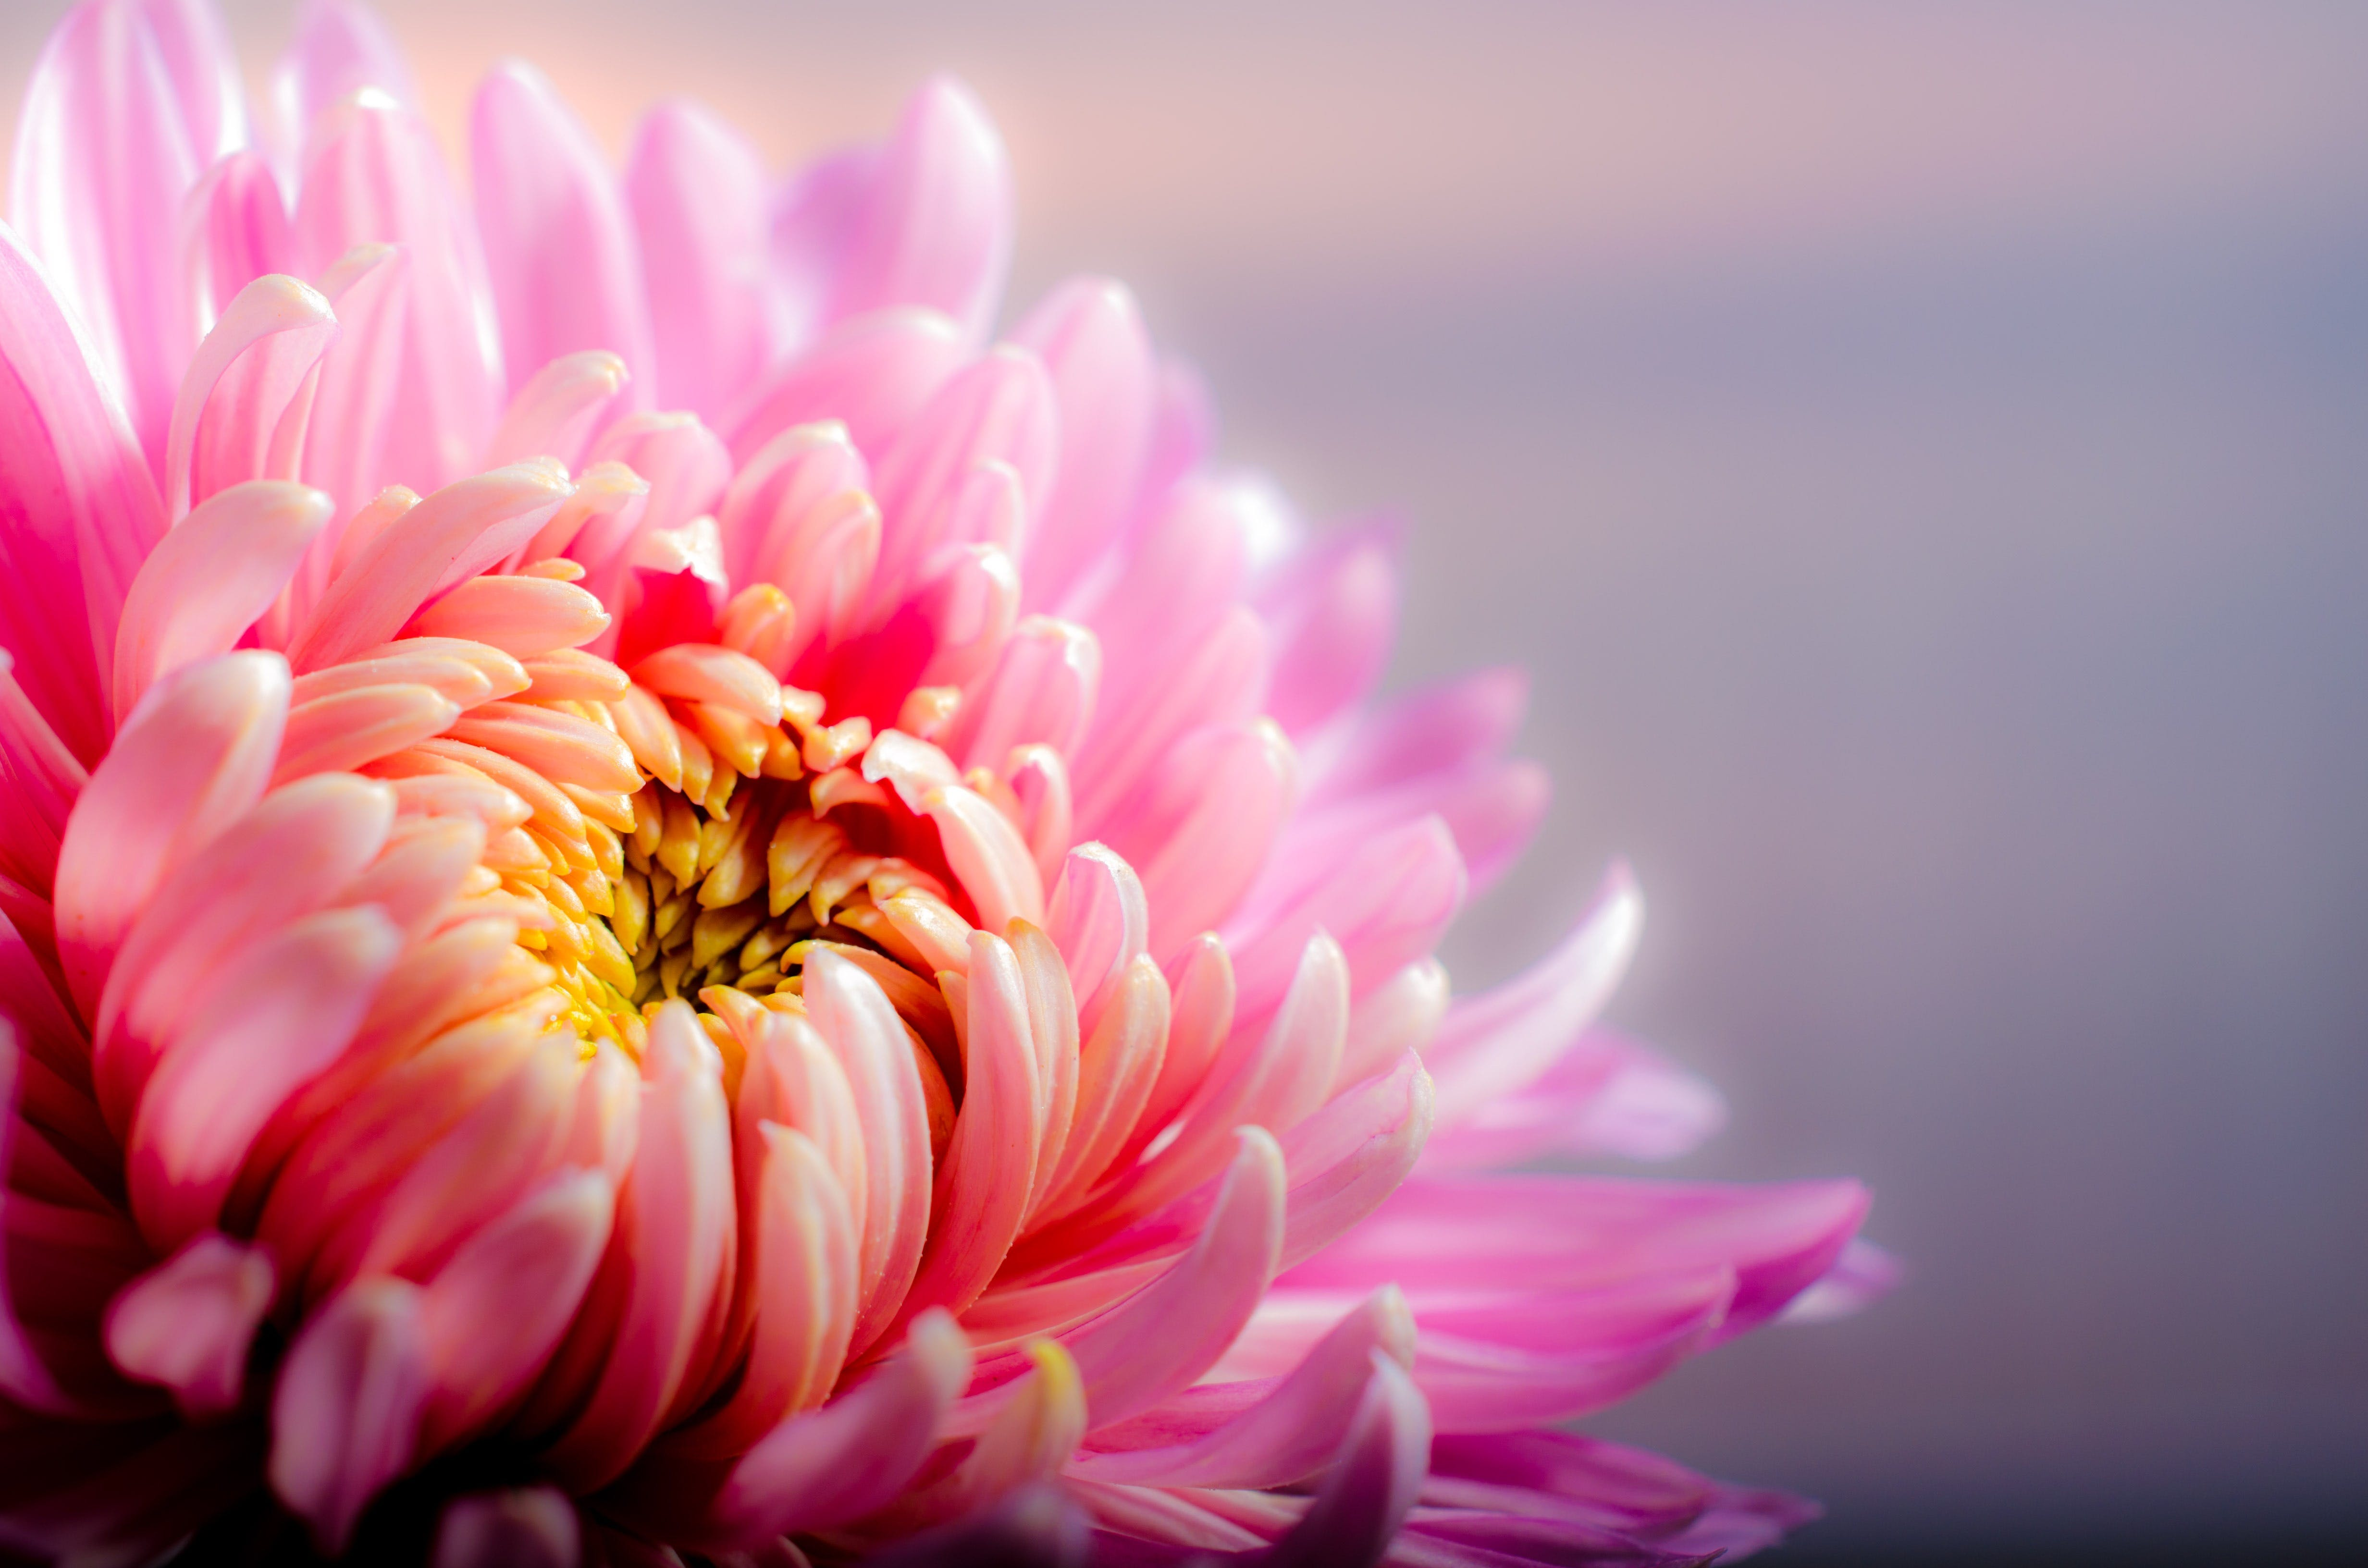 Pink Petaled Flower Closeup Photography